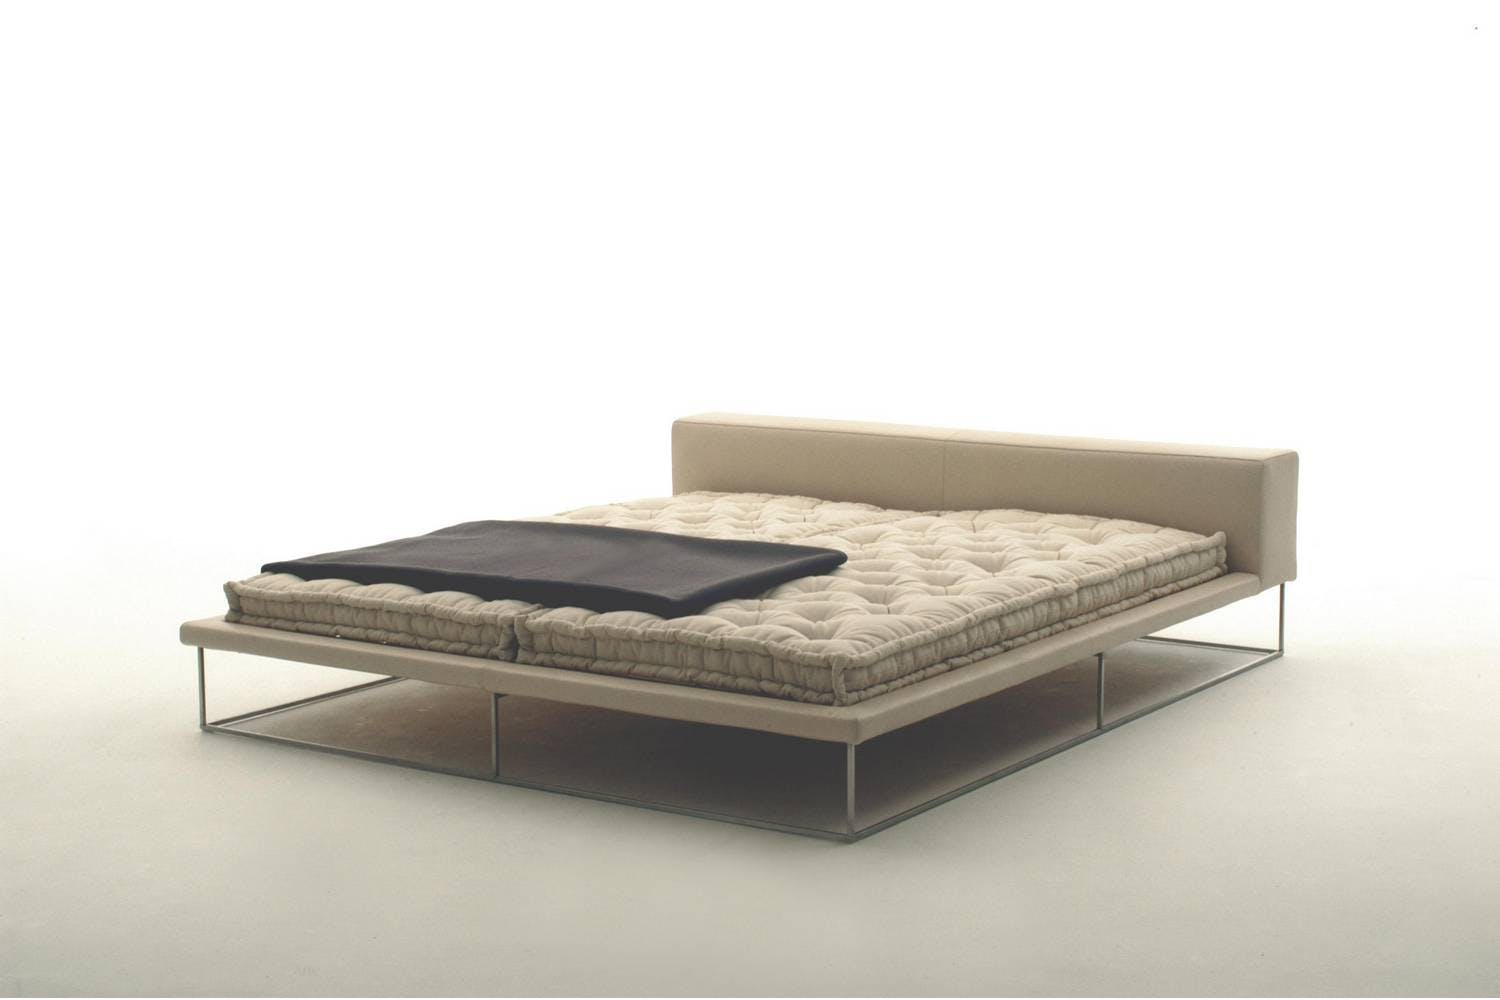 Ile Bed By Piero Lissoni For Living Divani